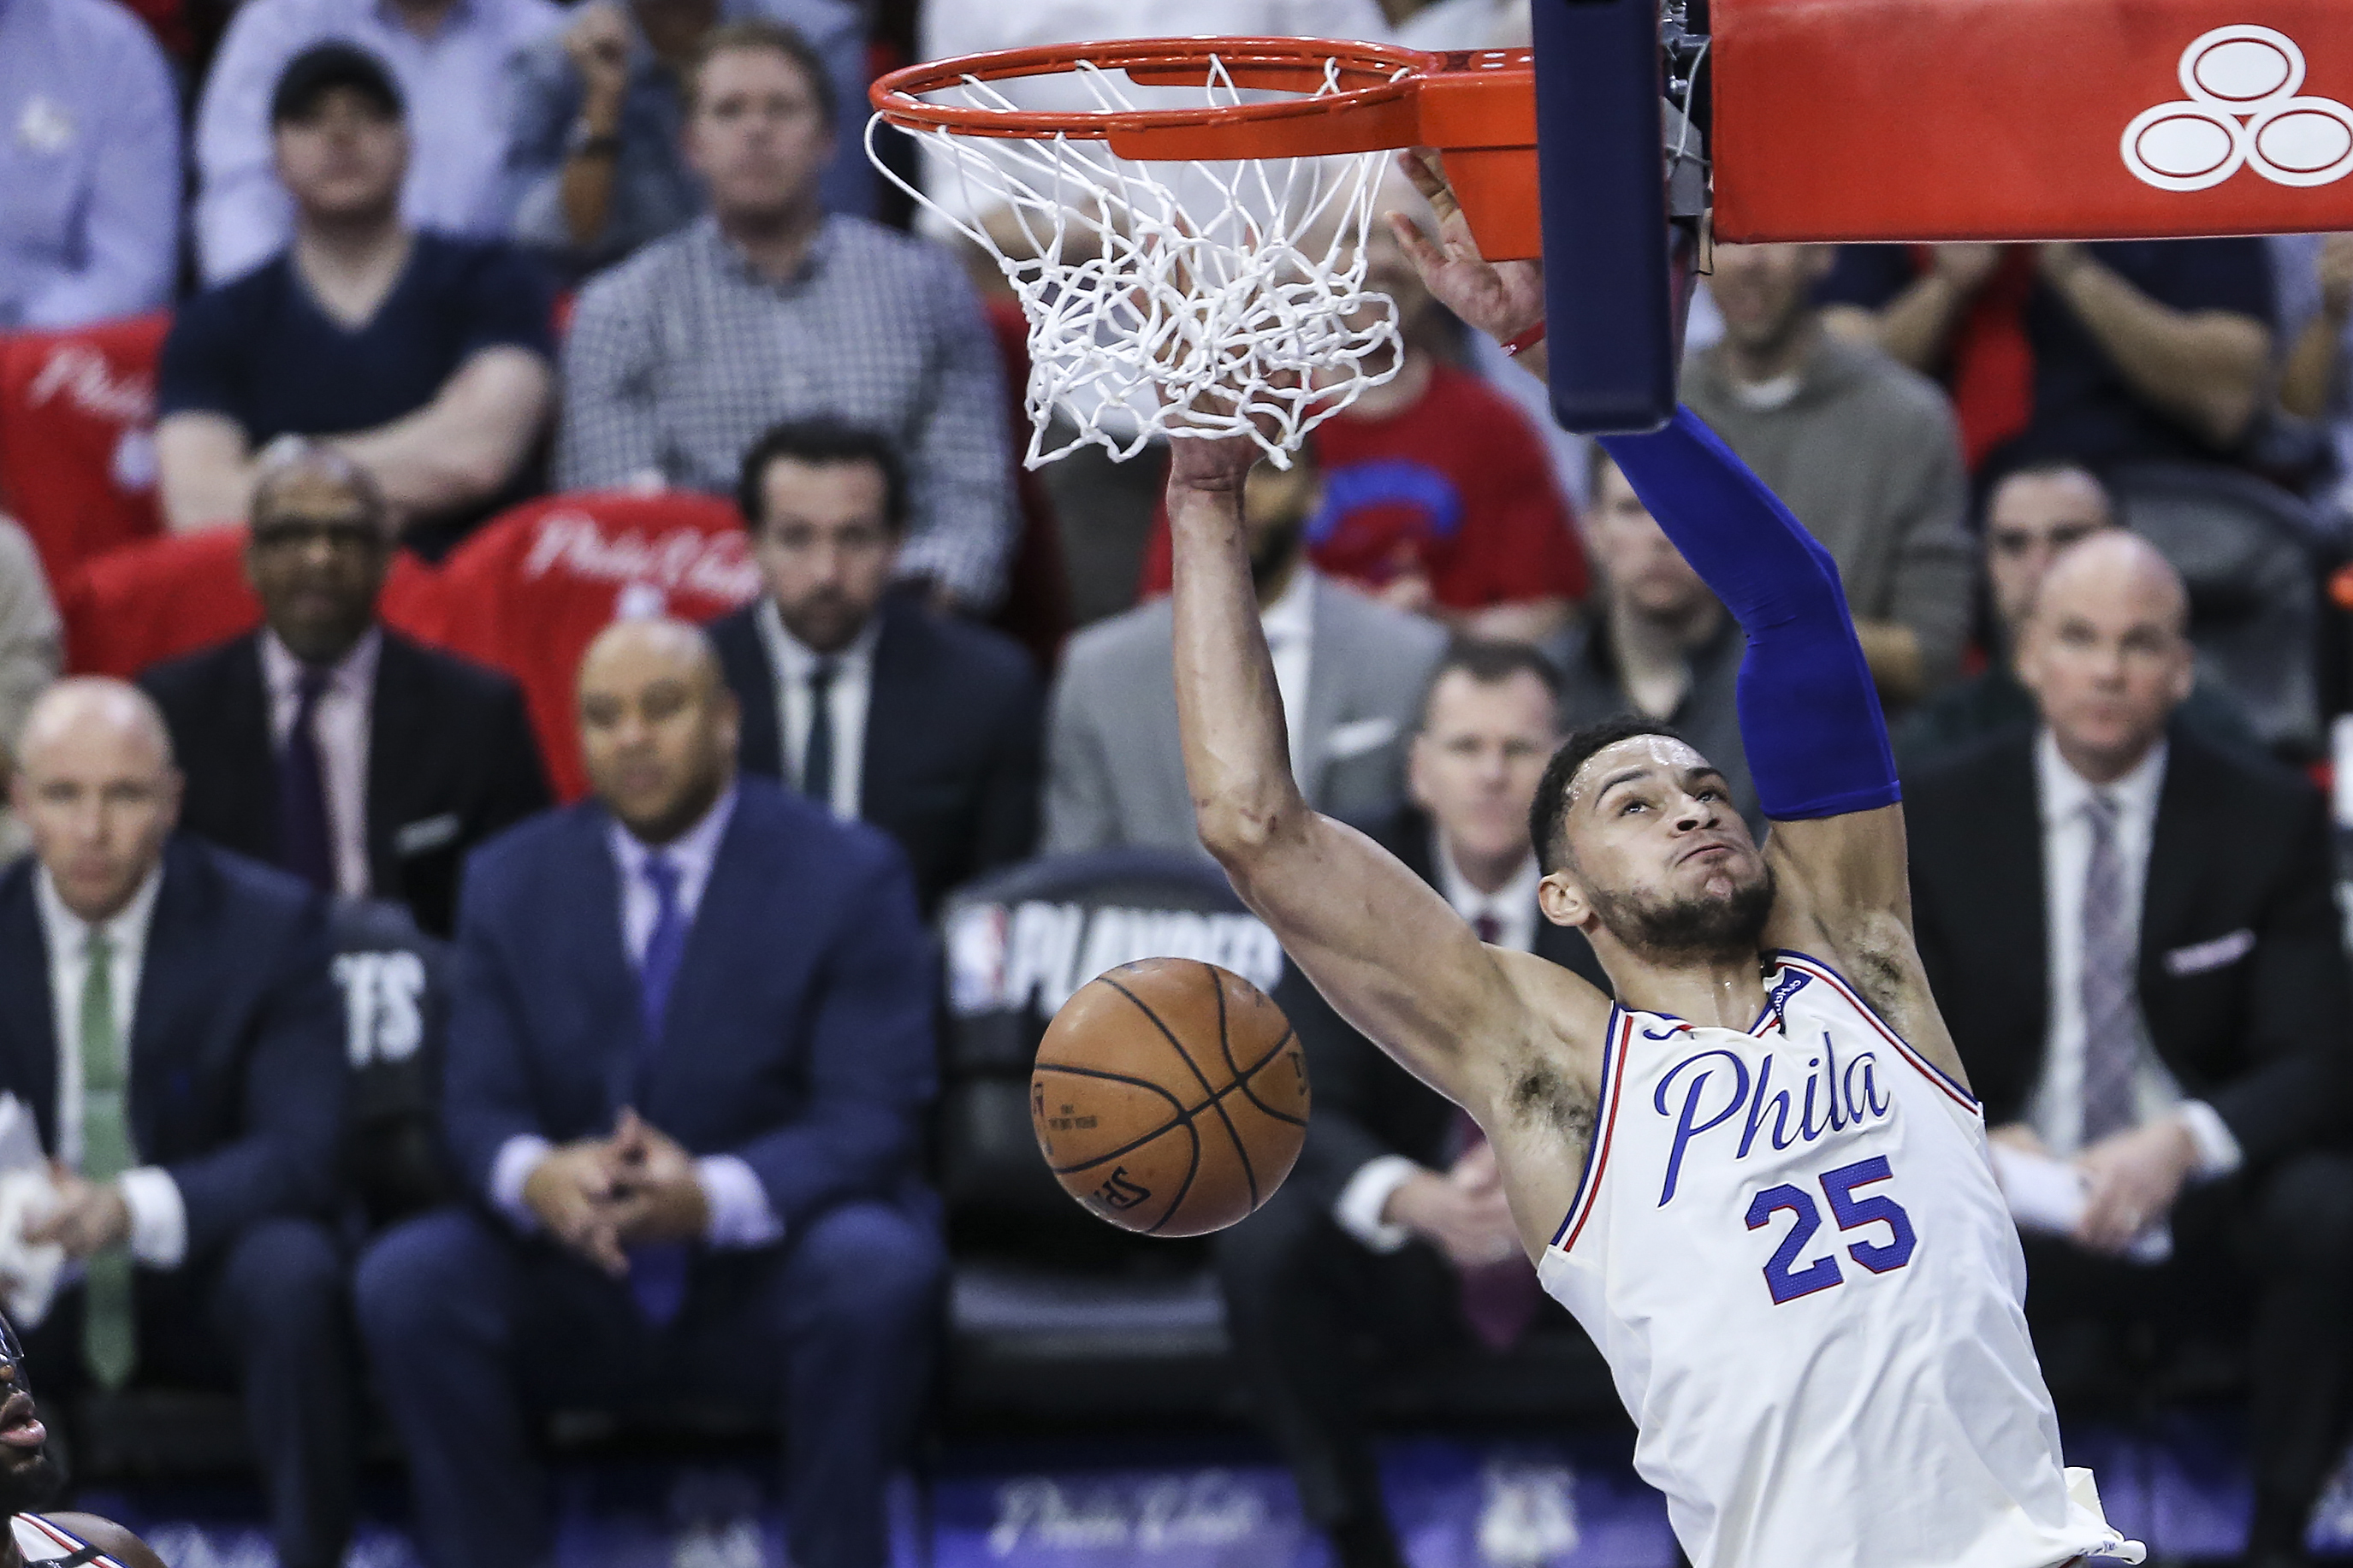 Sixers´ Ben Simmons dunks against the Celtics during the 1st quarter of Game 4 of the 2018 Eastern Conference Semifinals at the Wells Fargo Center in Philadelphia, Monday, May 7, 2018.